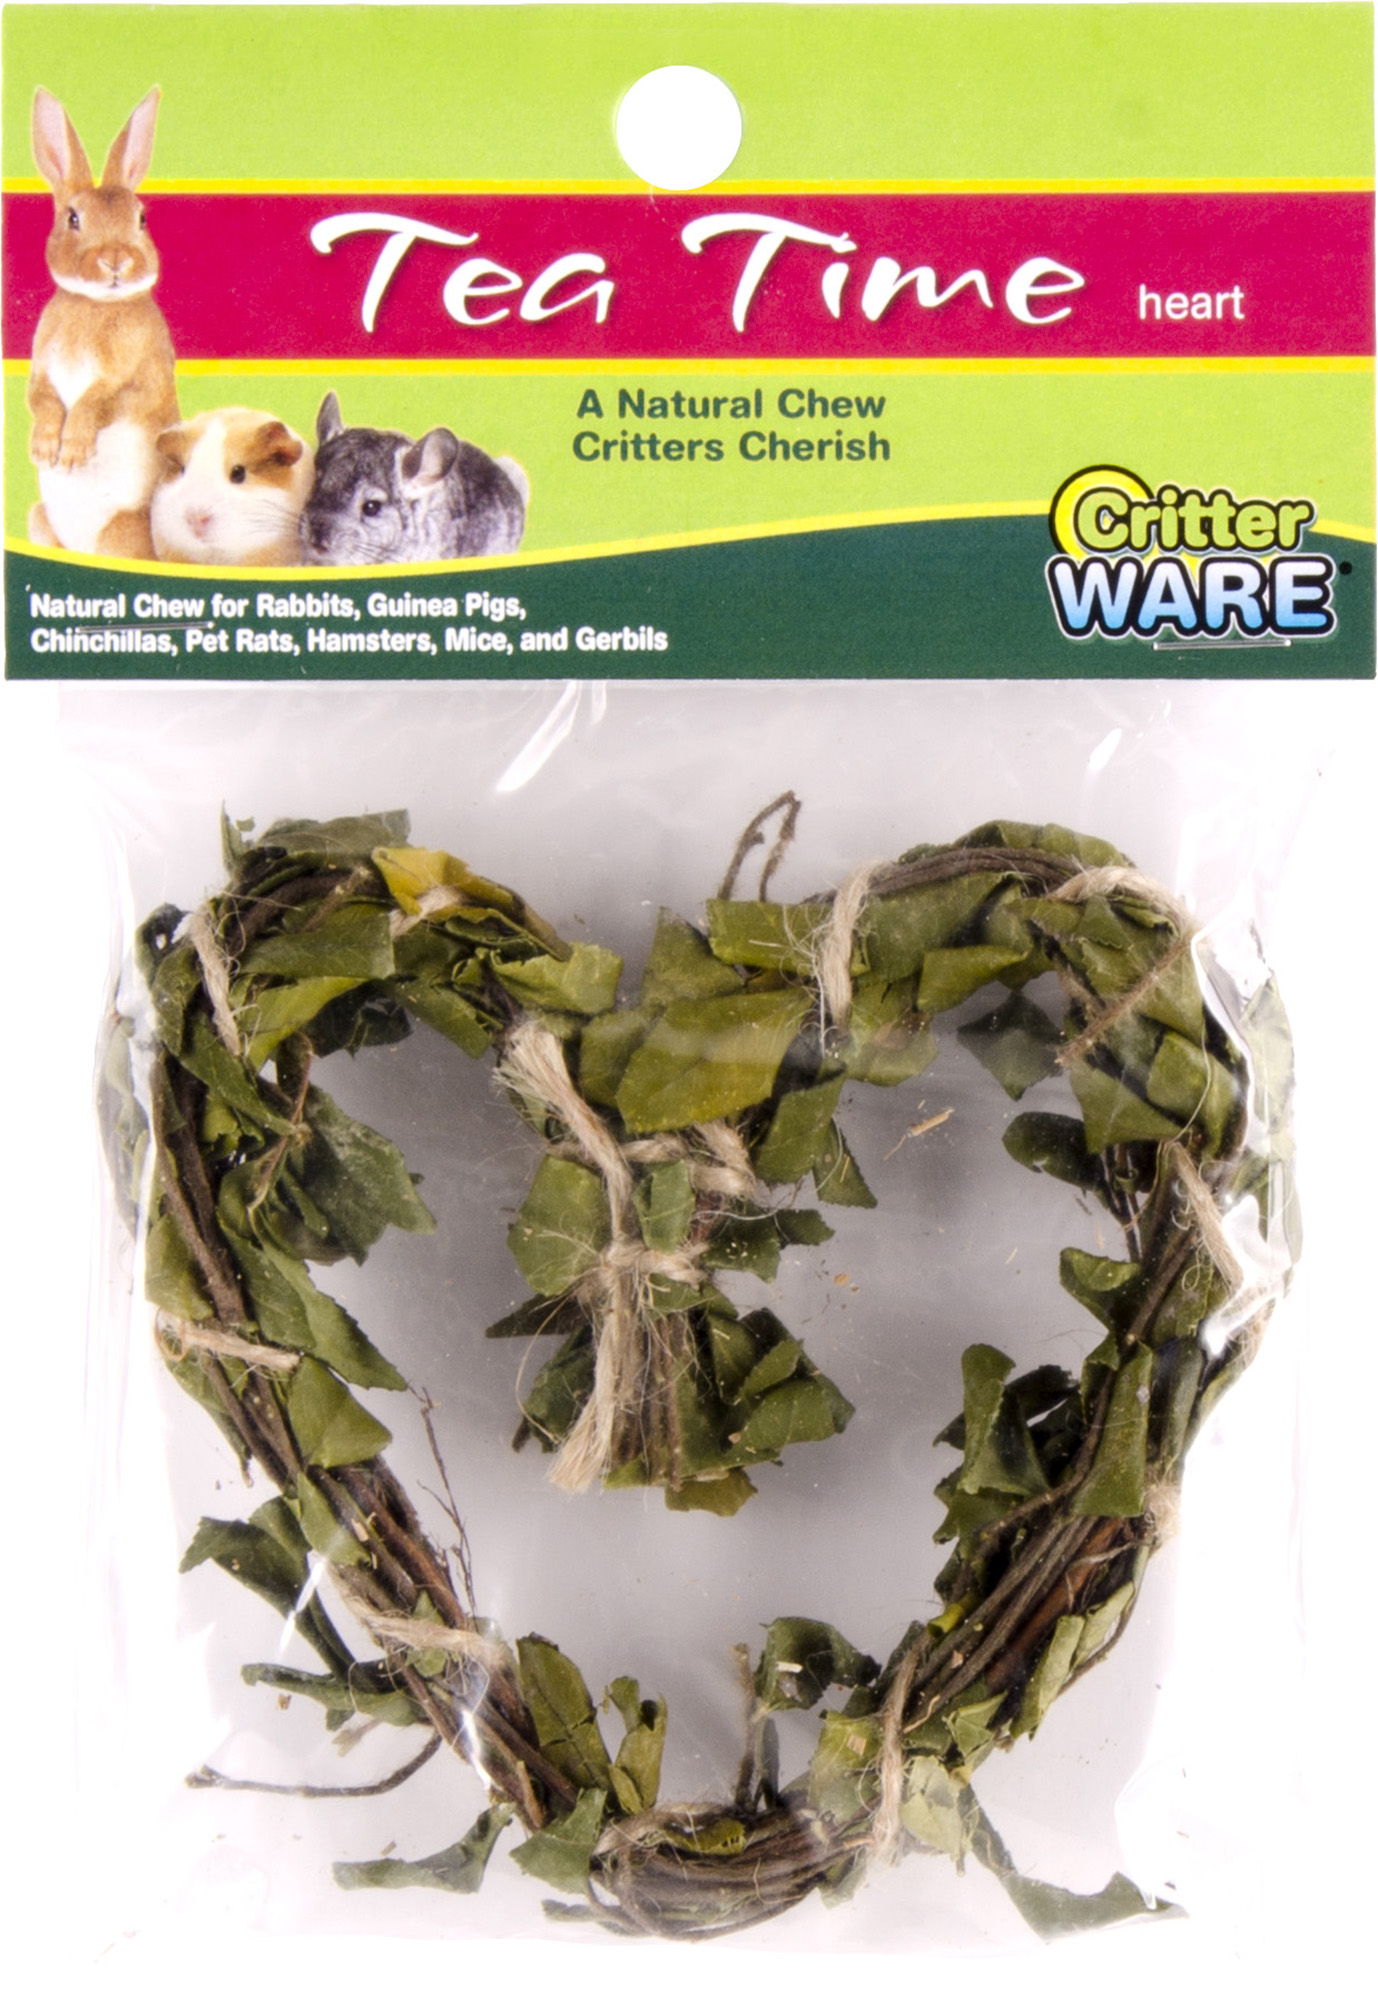 Ware Tea Time Heart, Tooth Trimming Dental Chew for Small Pets